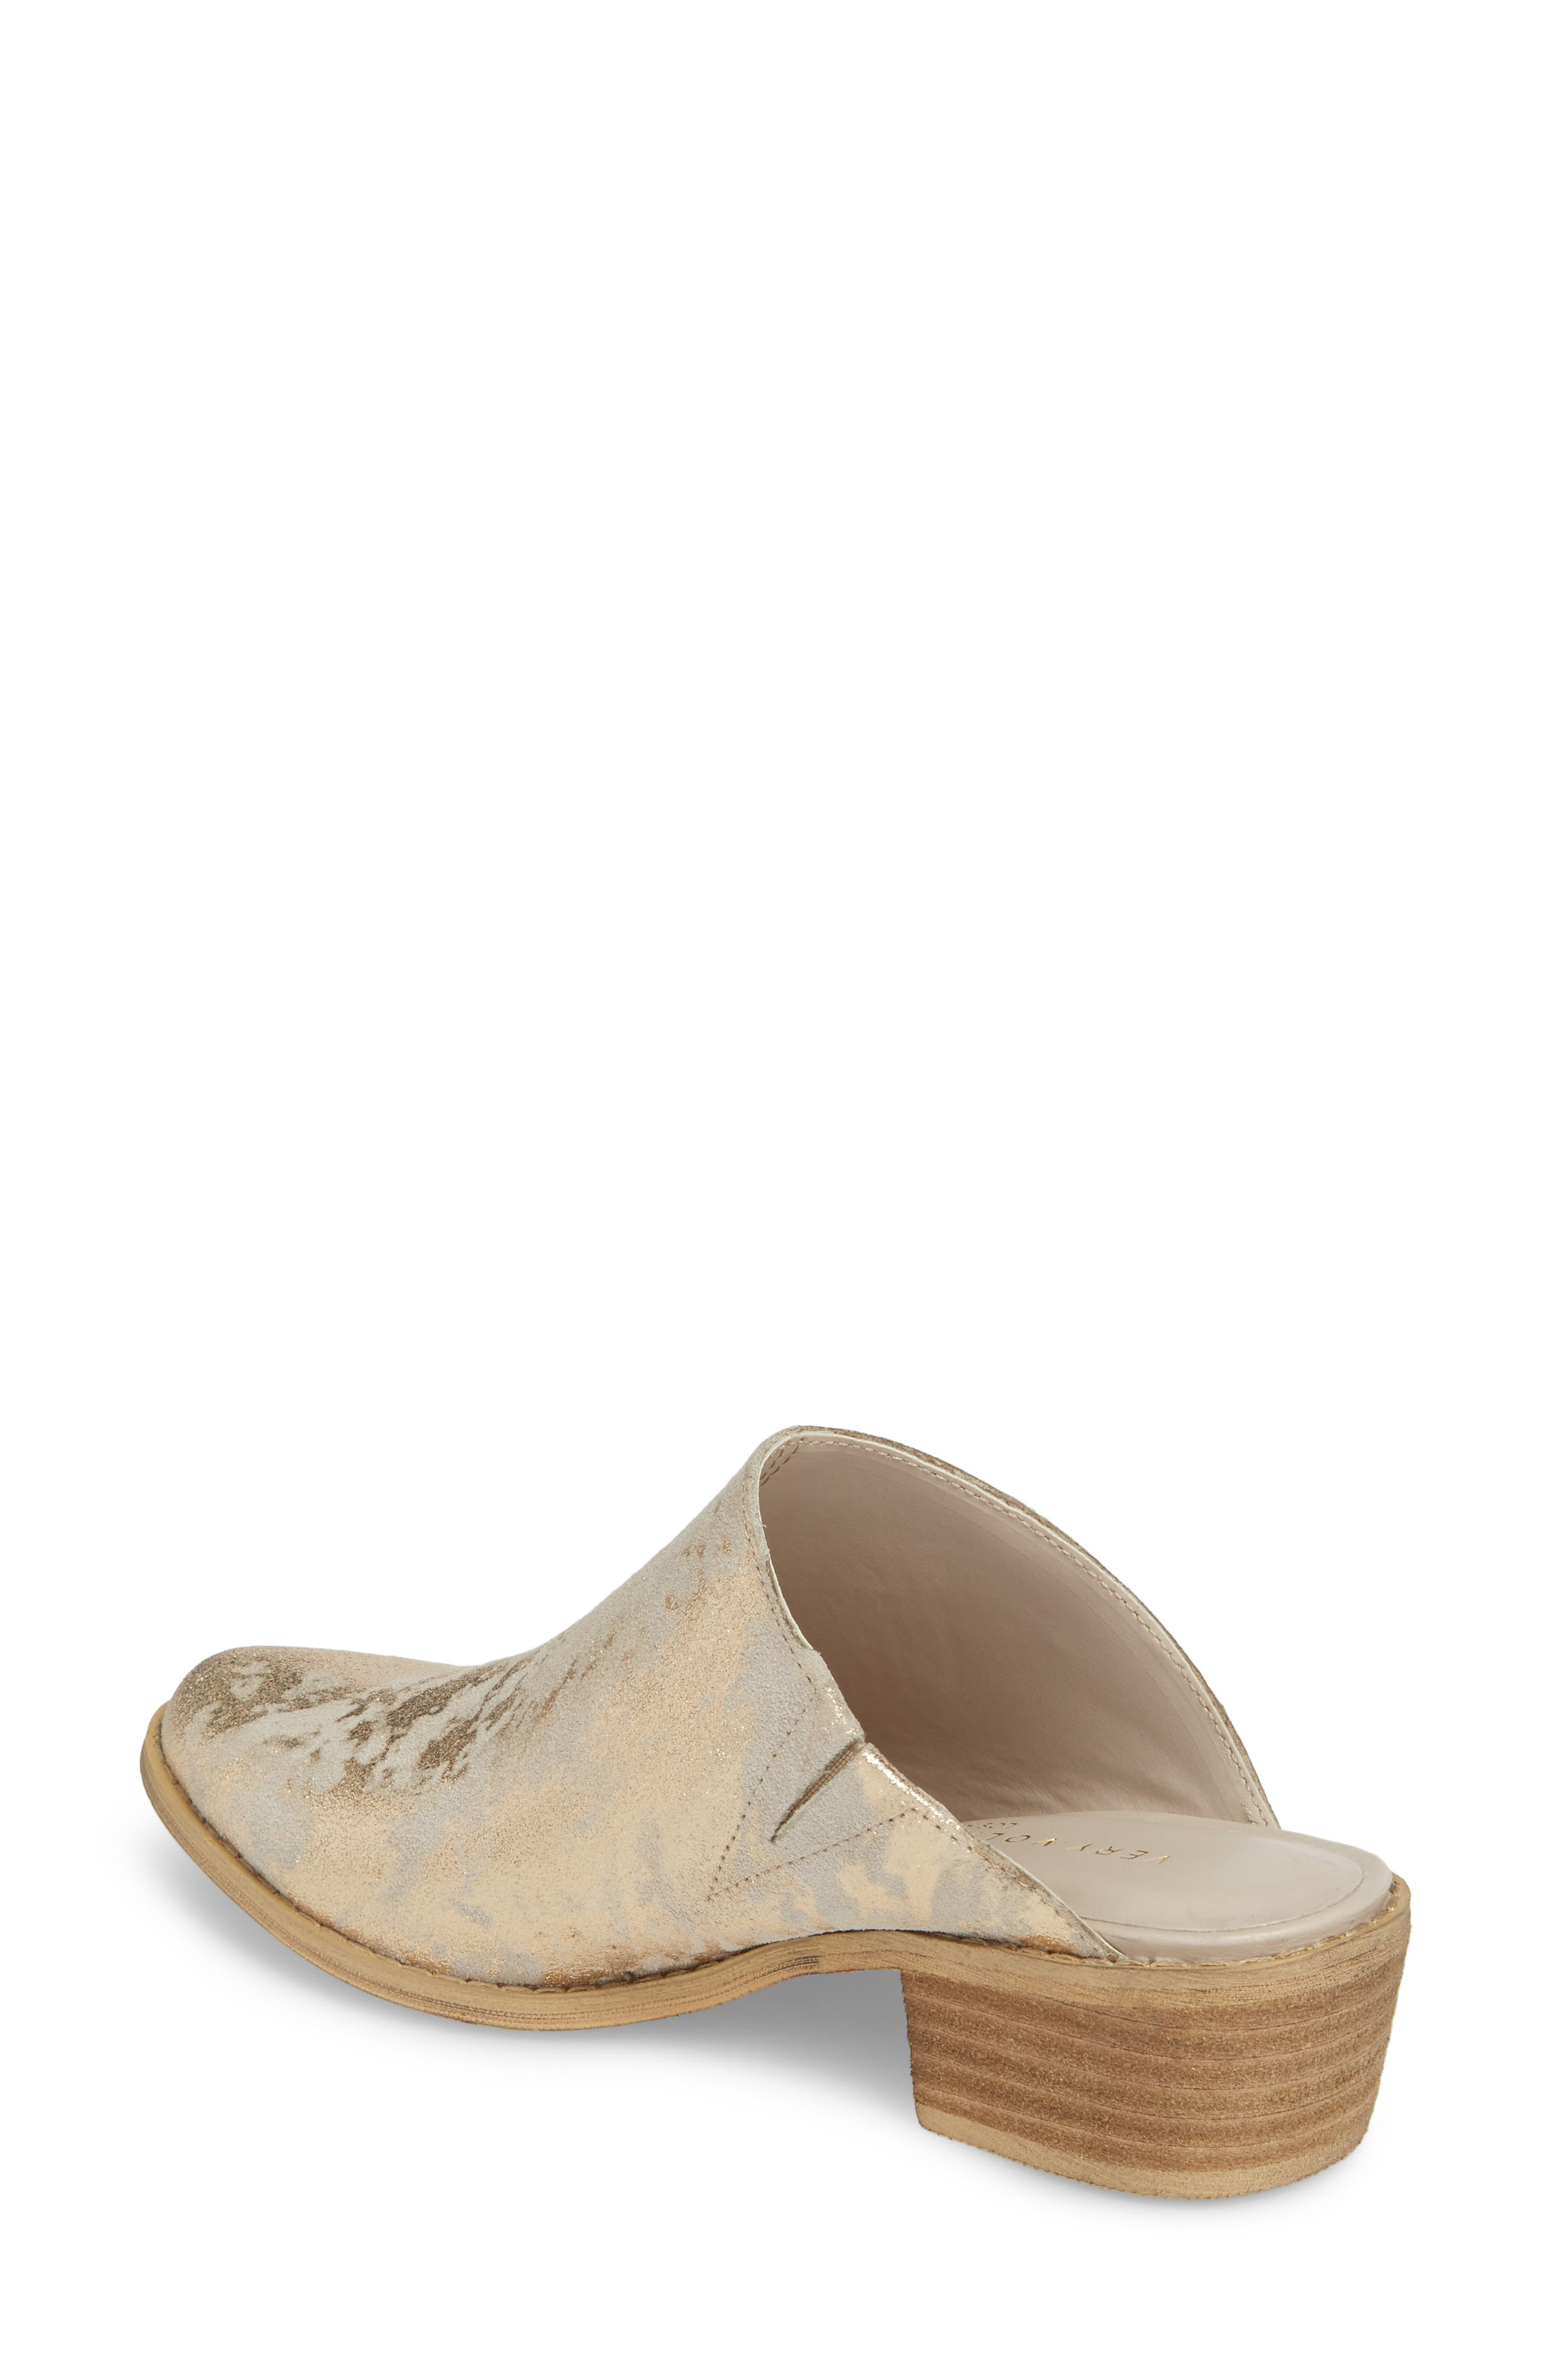 Moonstruck Mule,                             Alternate thumbnail 2, color,                             LIGHT GOLD SUEDE LEATHER